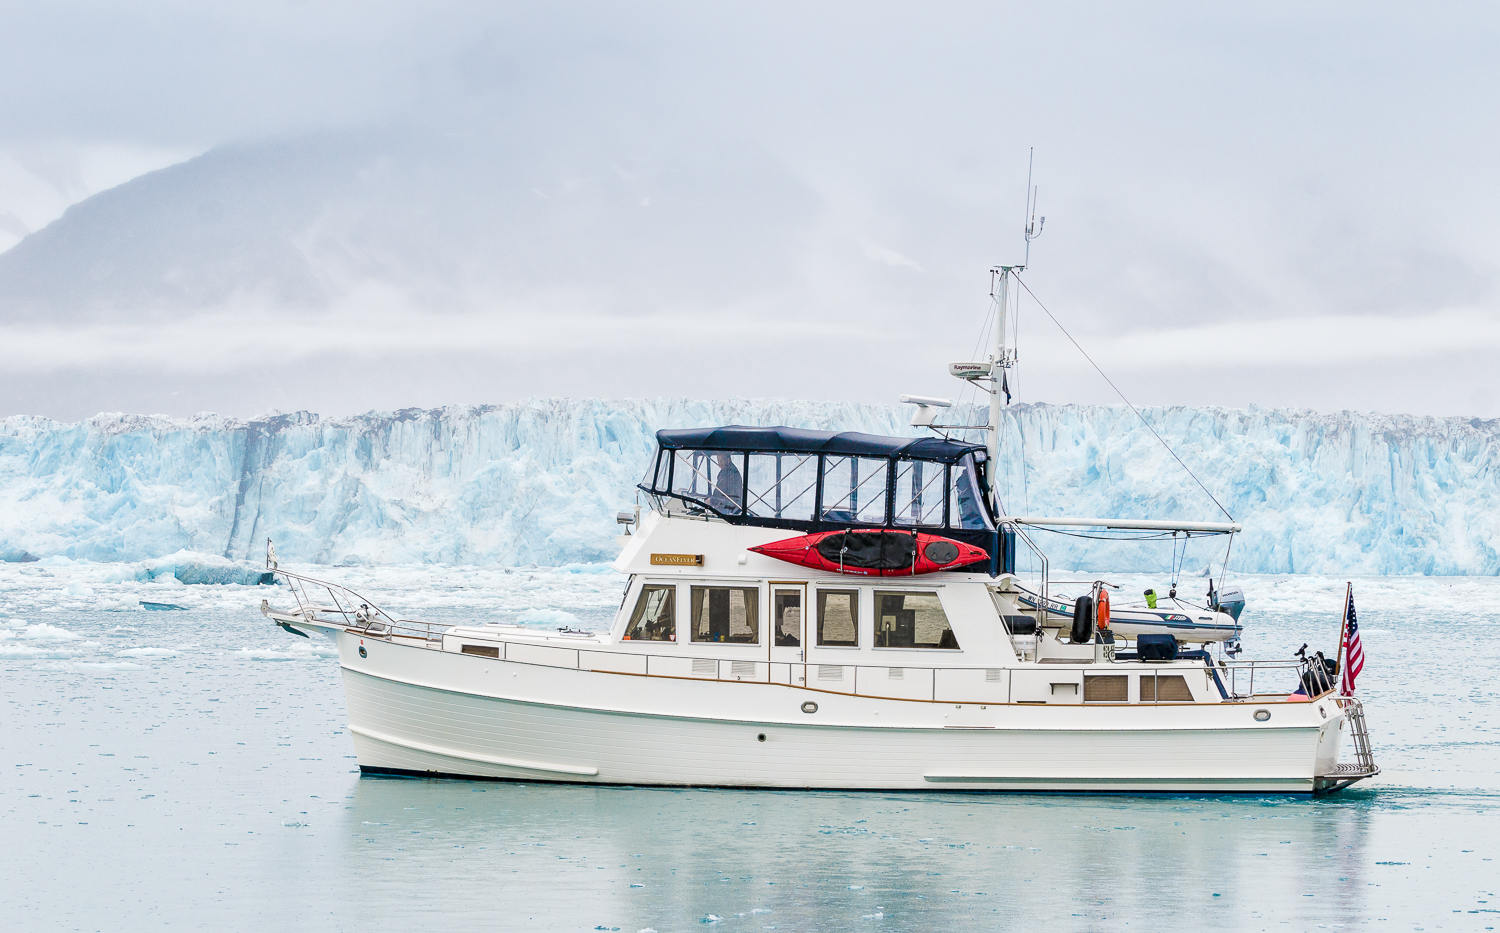 The perspective makes  OceanFlyer  look big in front of the Columbia Glacier. But we're still a 1/4 mile away.